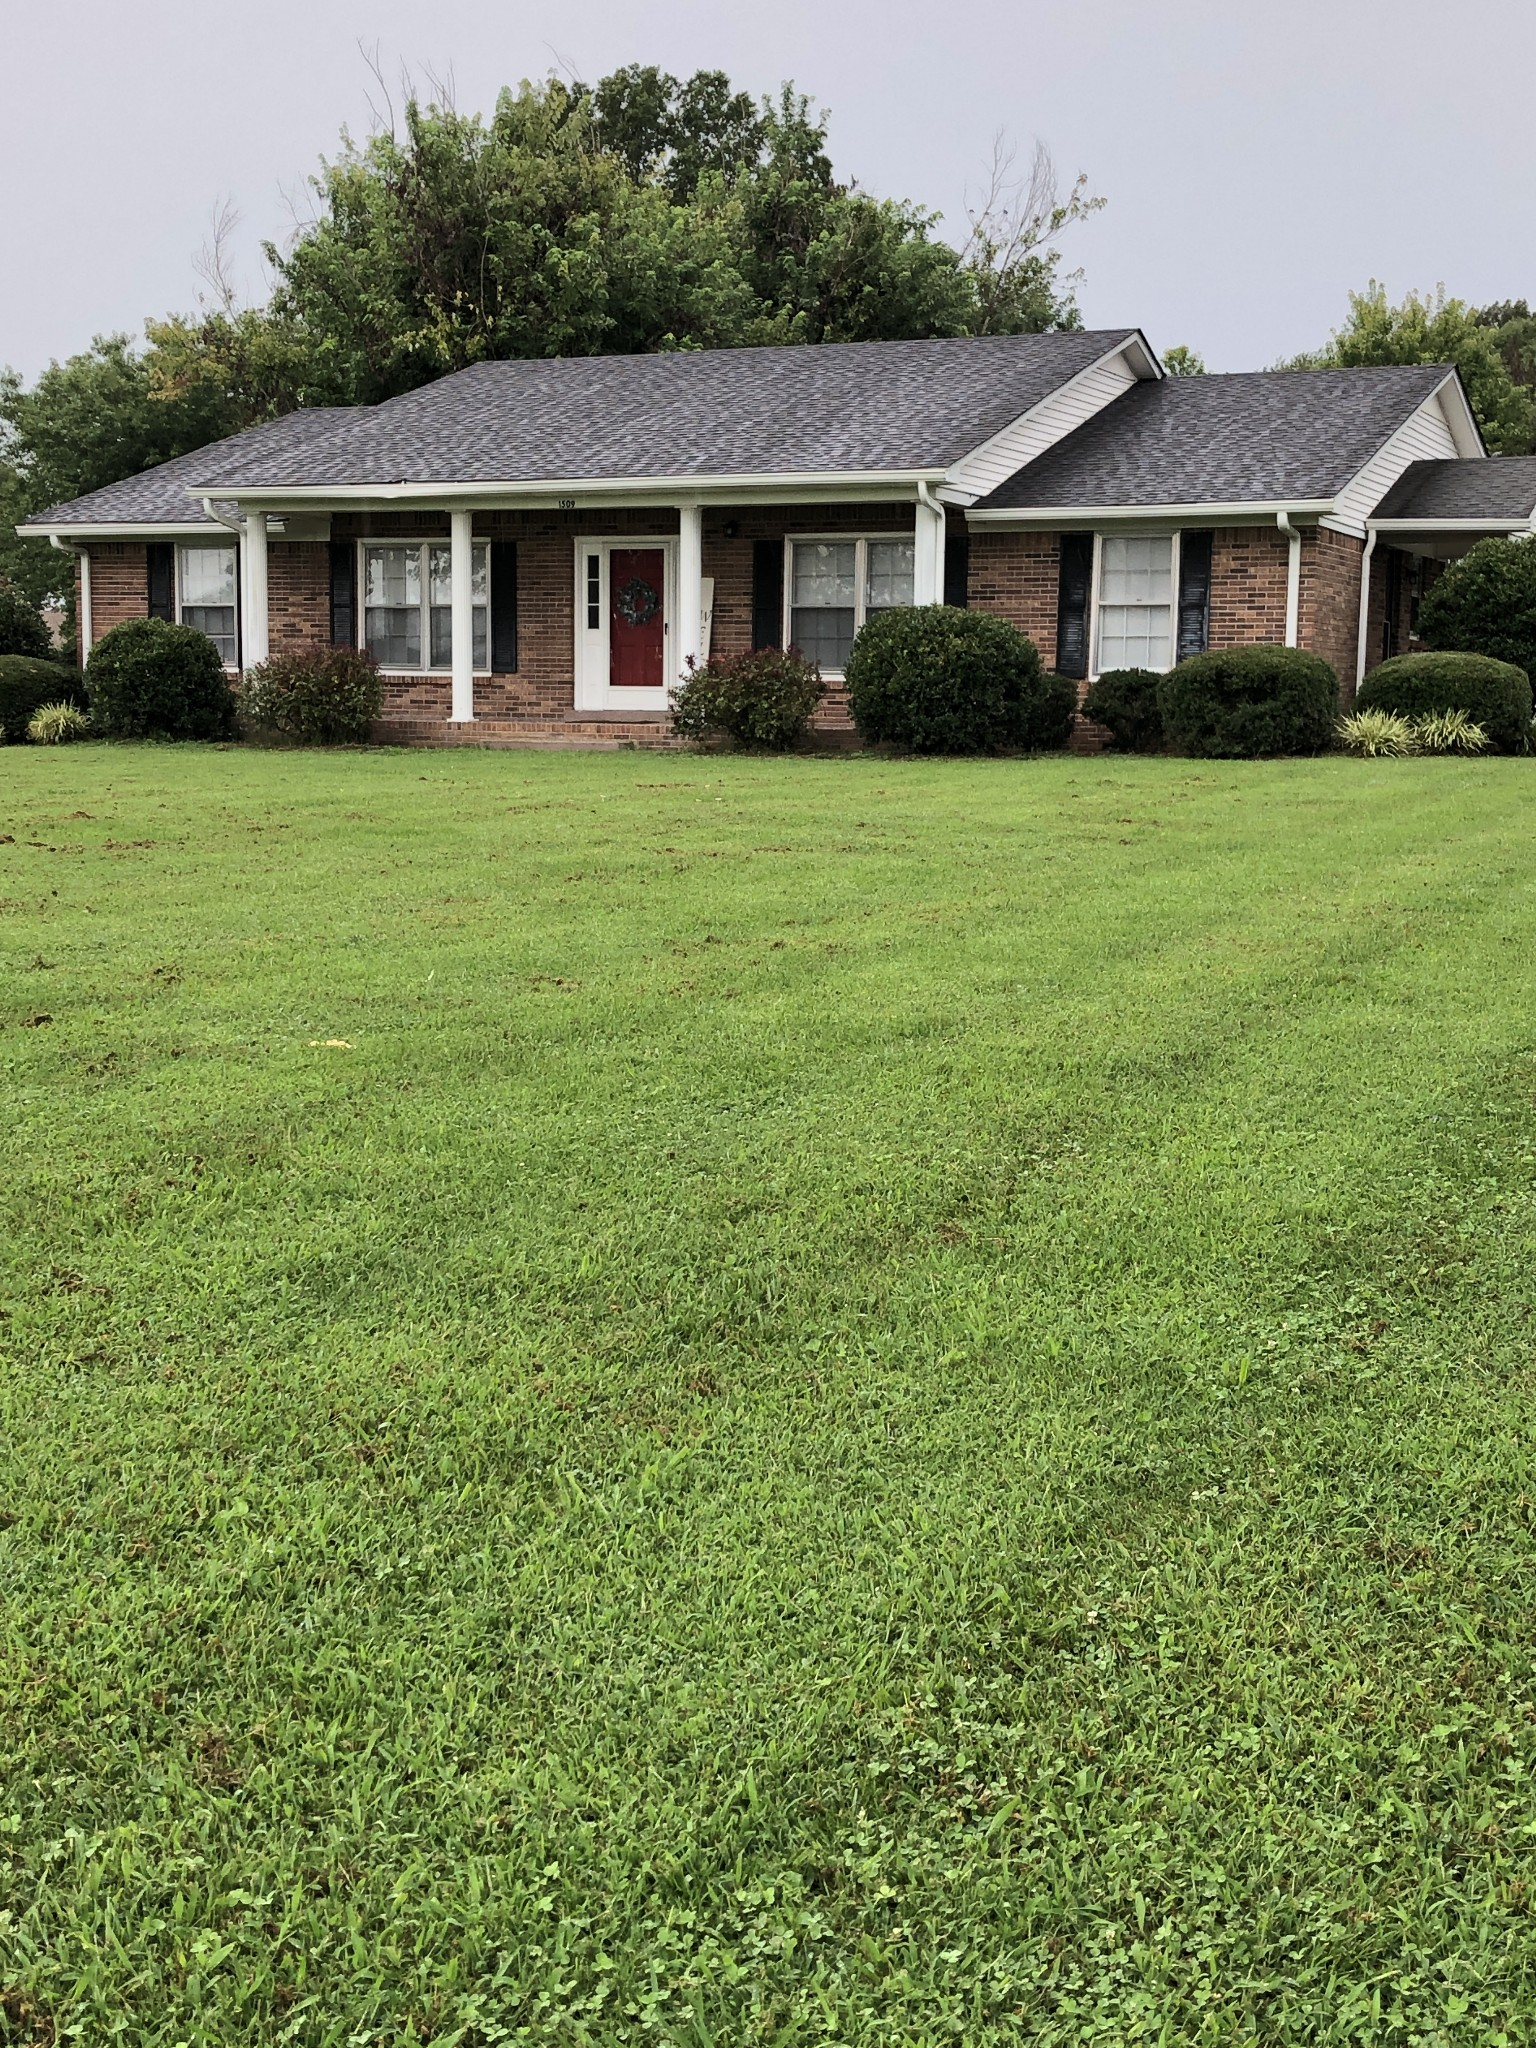 1509 Springer Rd, Lawrenceburg, Tennessee 38464, 3 Bedrooms Bedrooms, ,3 BathroomsBathrooms,Single Family,For Sale,1509 Springer Rd,1,2183142